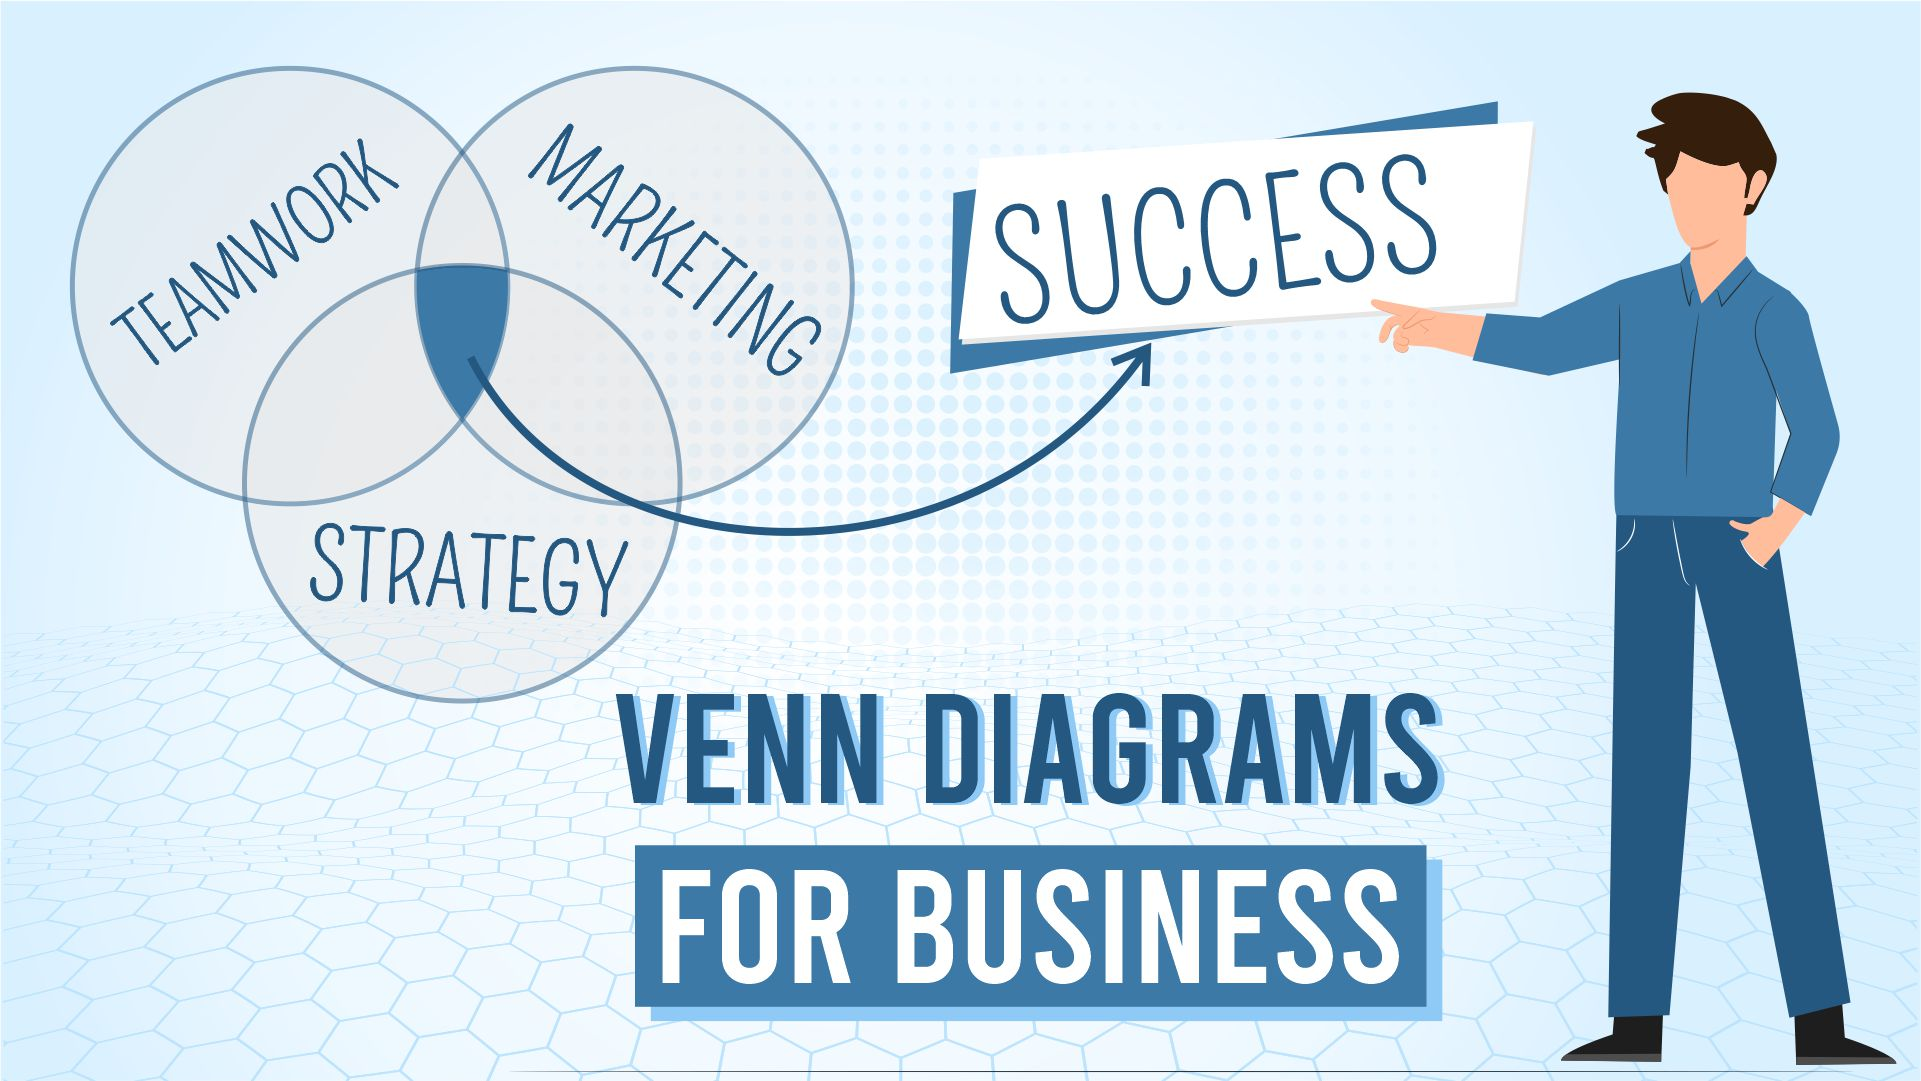 7 Business Uses of Venn Diagram You Might Not Know Plus Venn Diagram Examples